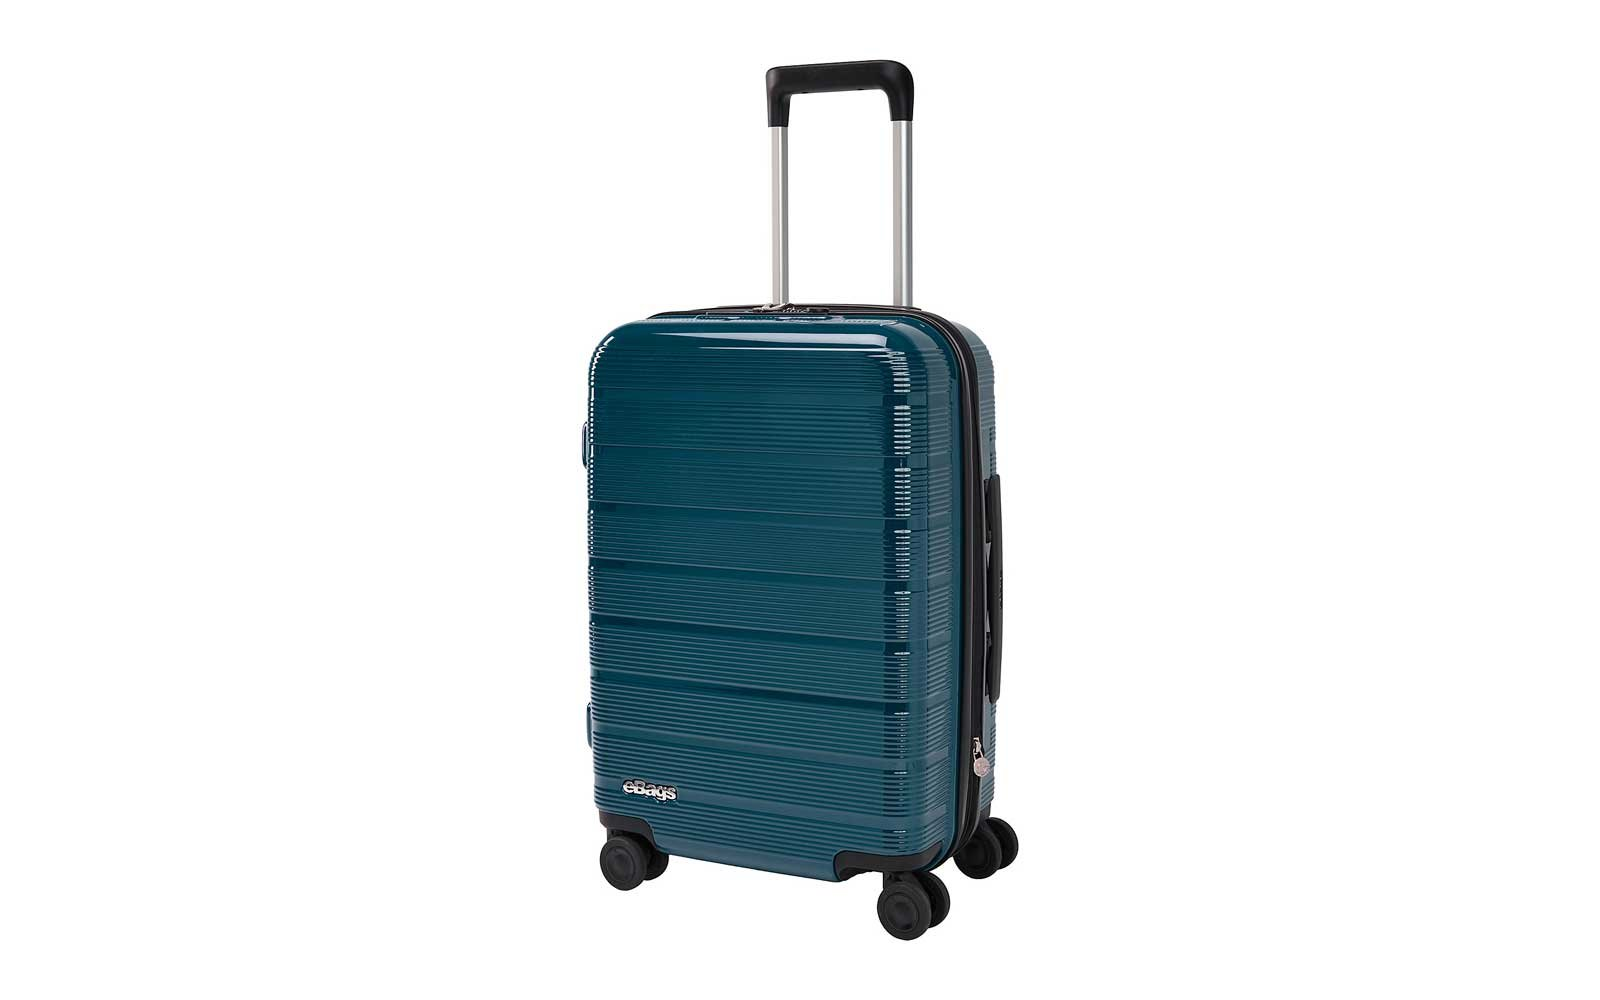 d95be504a The Best Lightweight Luggage You Can Buy in 2019 | Travel + Leisure